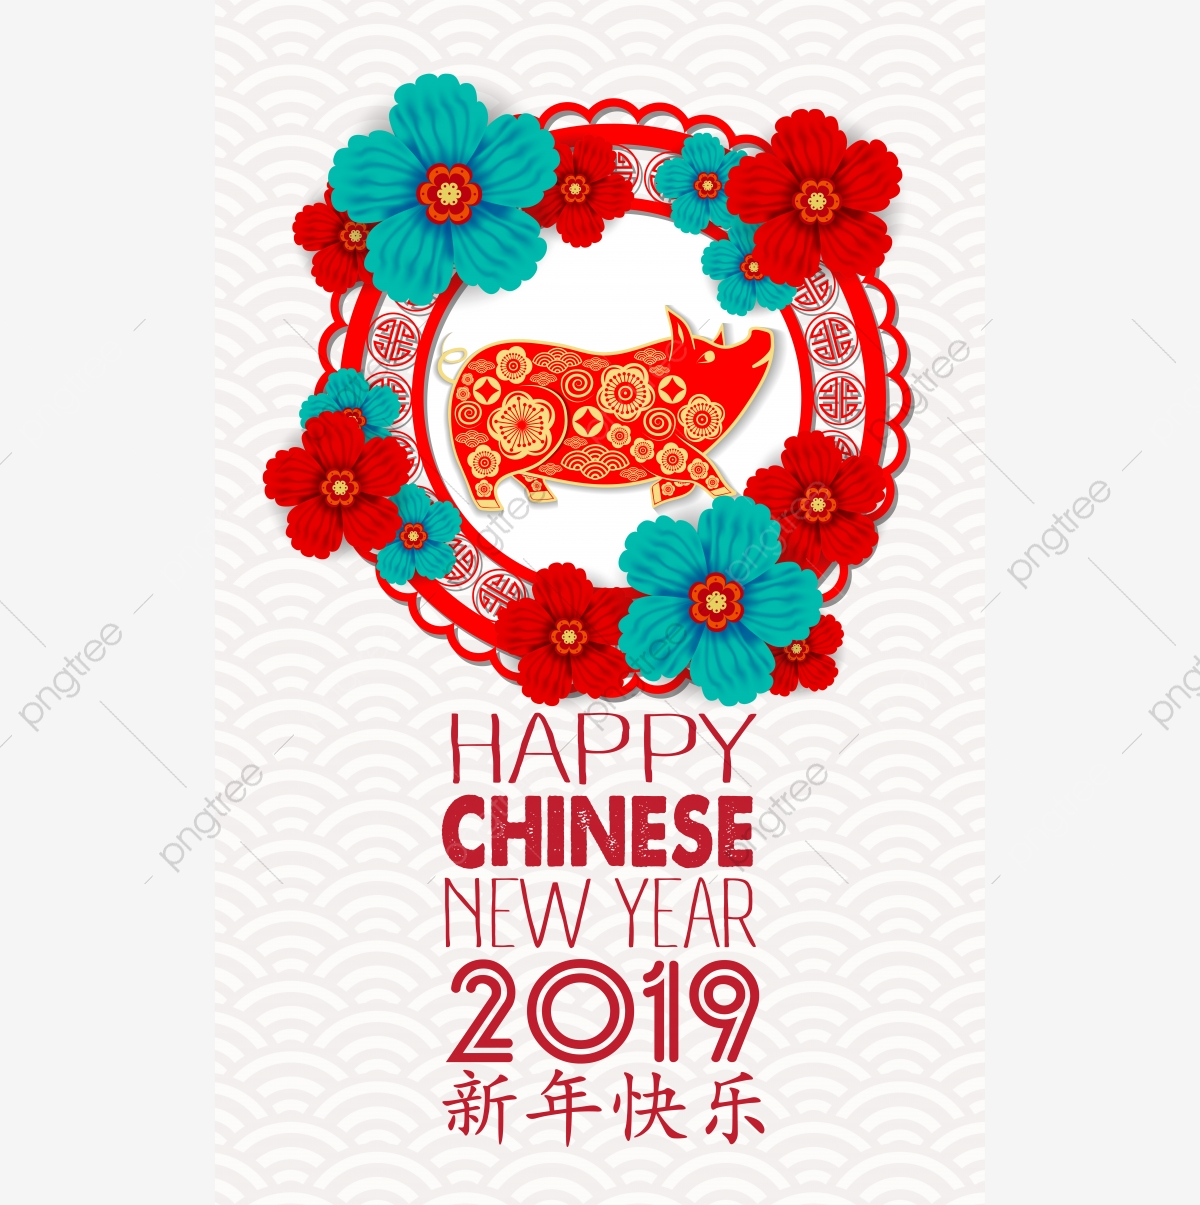 Happy Chinese New Year 2019 Year Of The Pig, Wealthy, Invitation PNG.